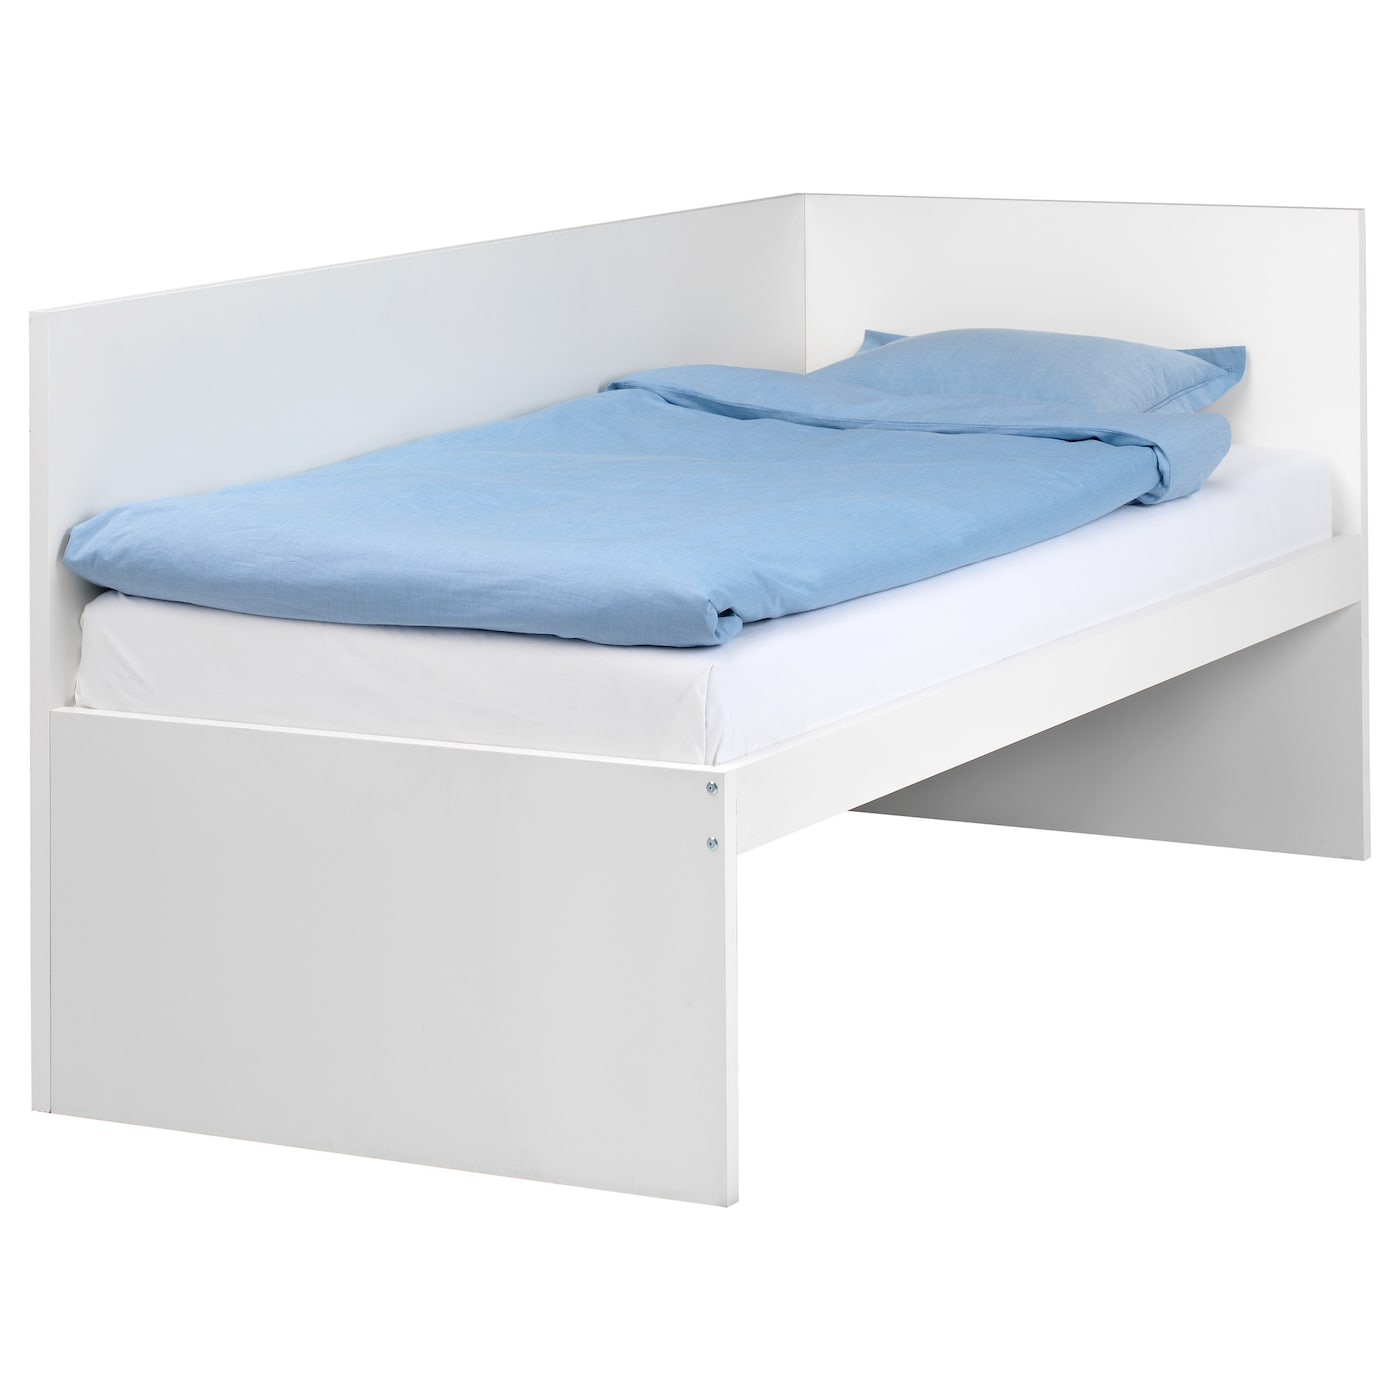 Flaxa bed frm w headboard slatted bd base white 90x200 cm for Lit 80x190 ikea